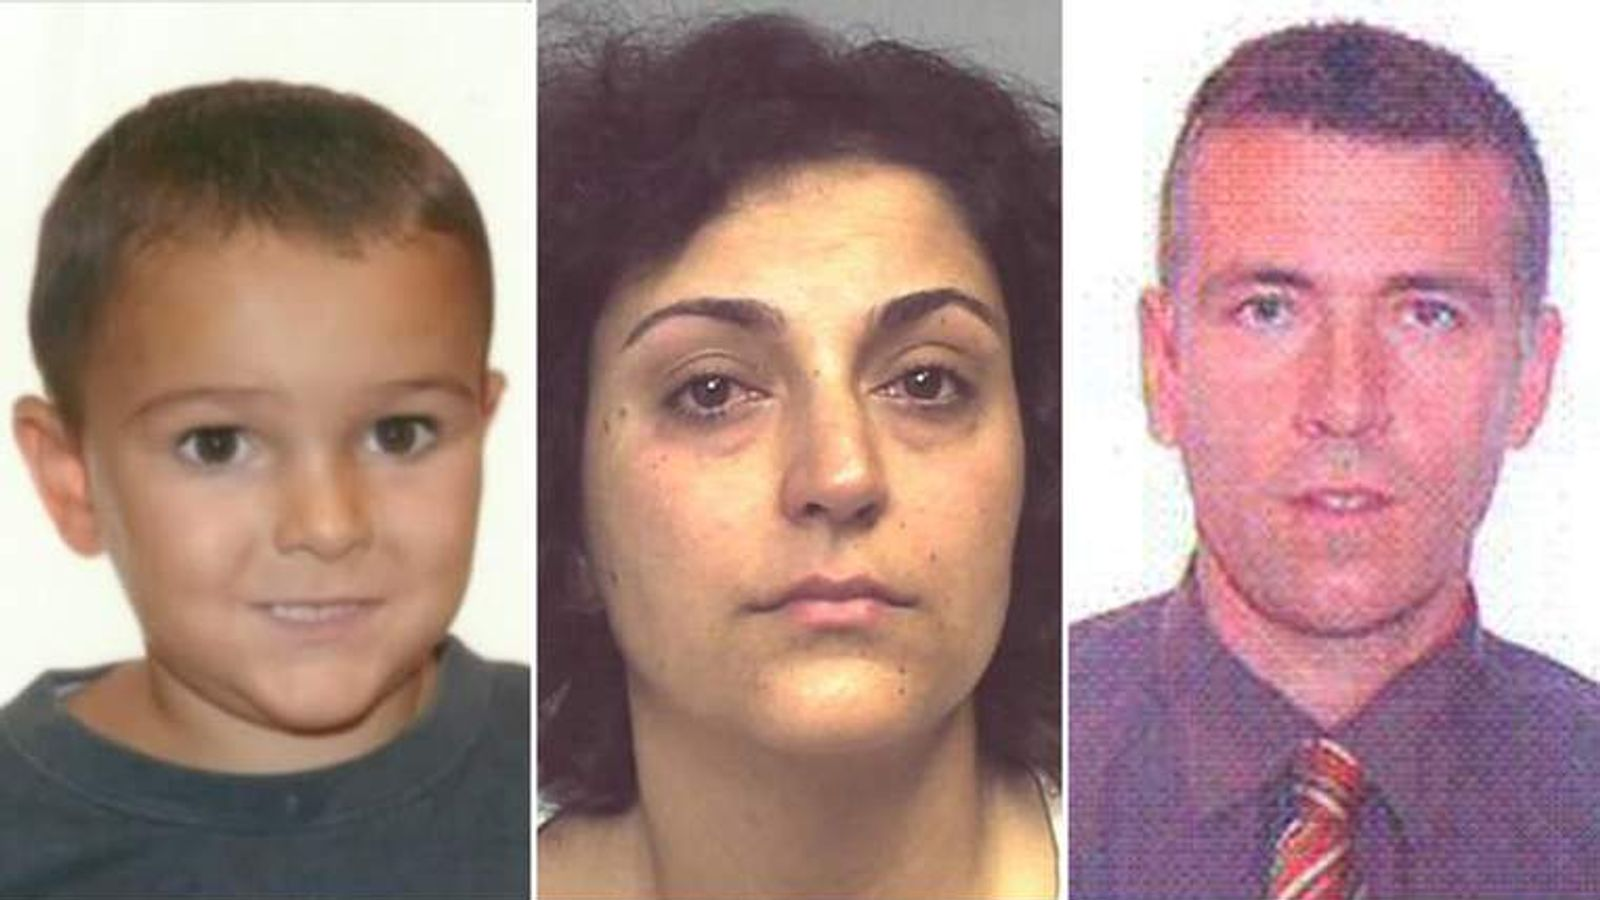 Police fear for the life of a sick five-year-old boy taken without consent by his parents, if he is not found within 24 hours